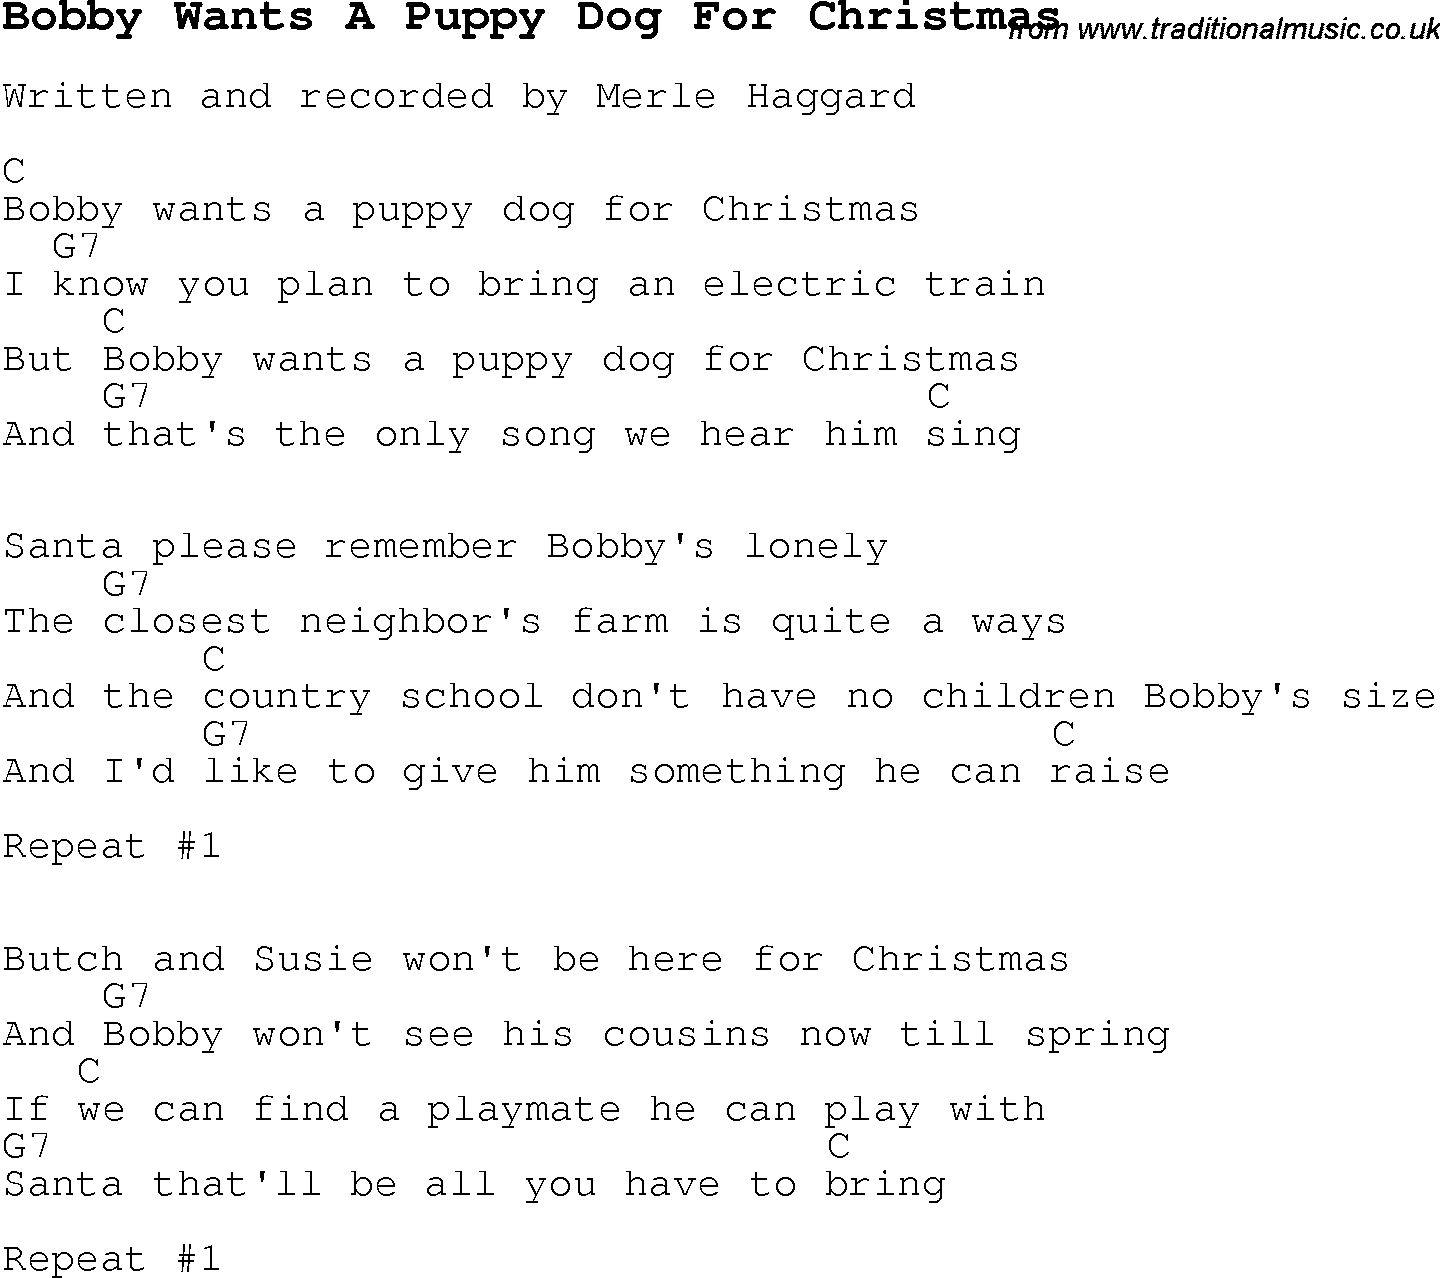 Christmas Carol/Song lyrics with chords for Bobby Wants A Puppy Dog ...